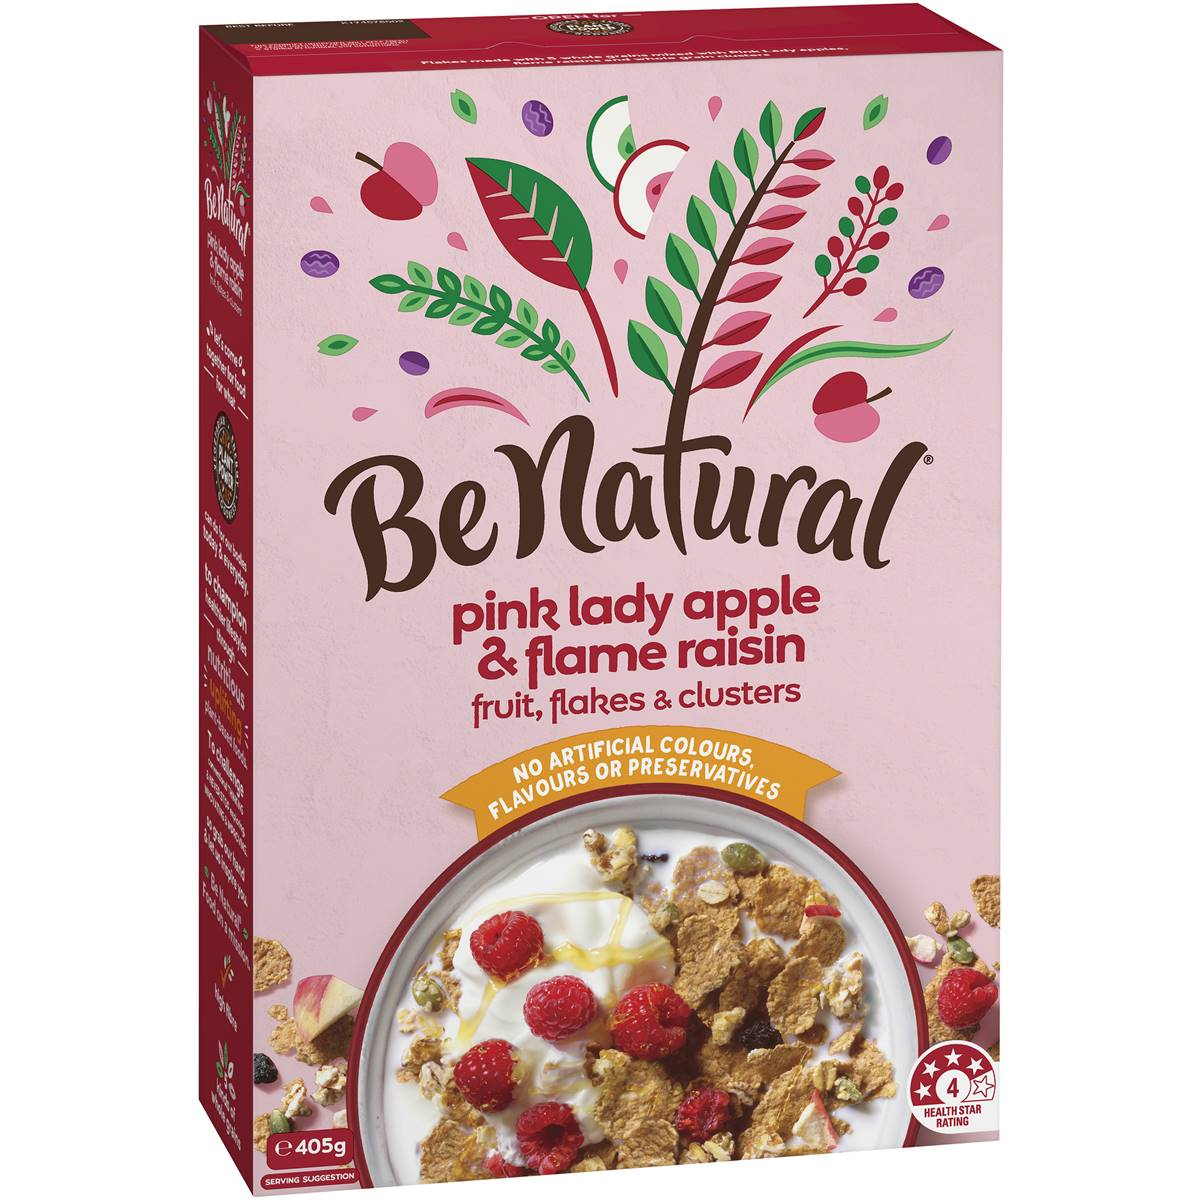 Be Natural Breakfast Cereal With Pink Lady Apple & Flame Raisins